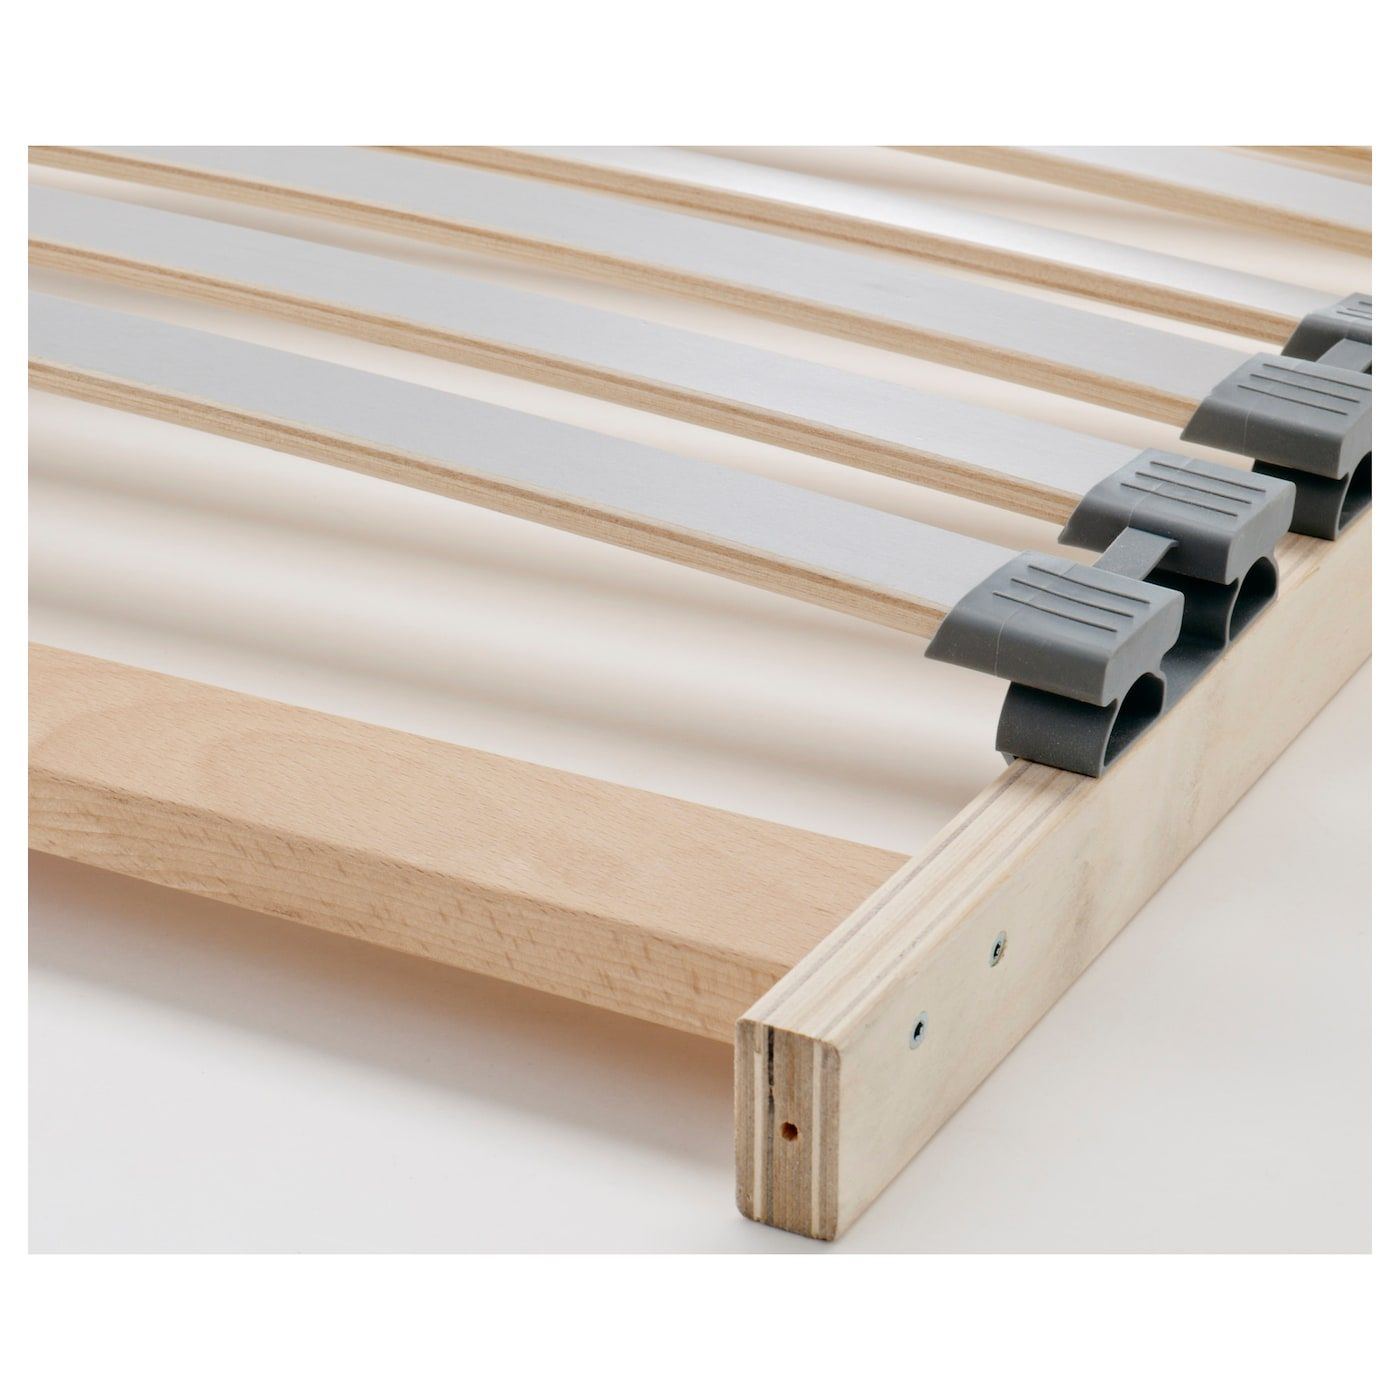 LÖNSET Slatted bed base Full/Double Bed frame with storage